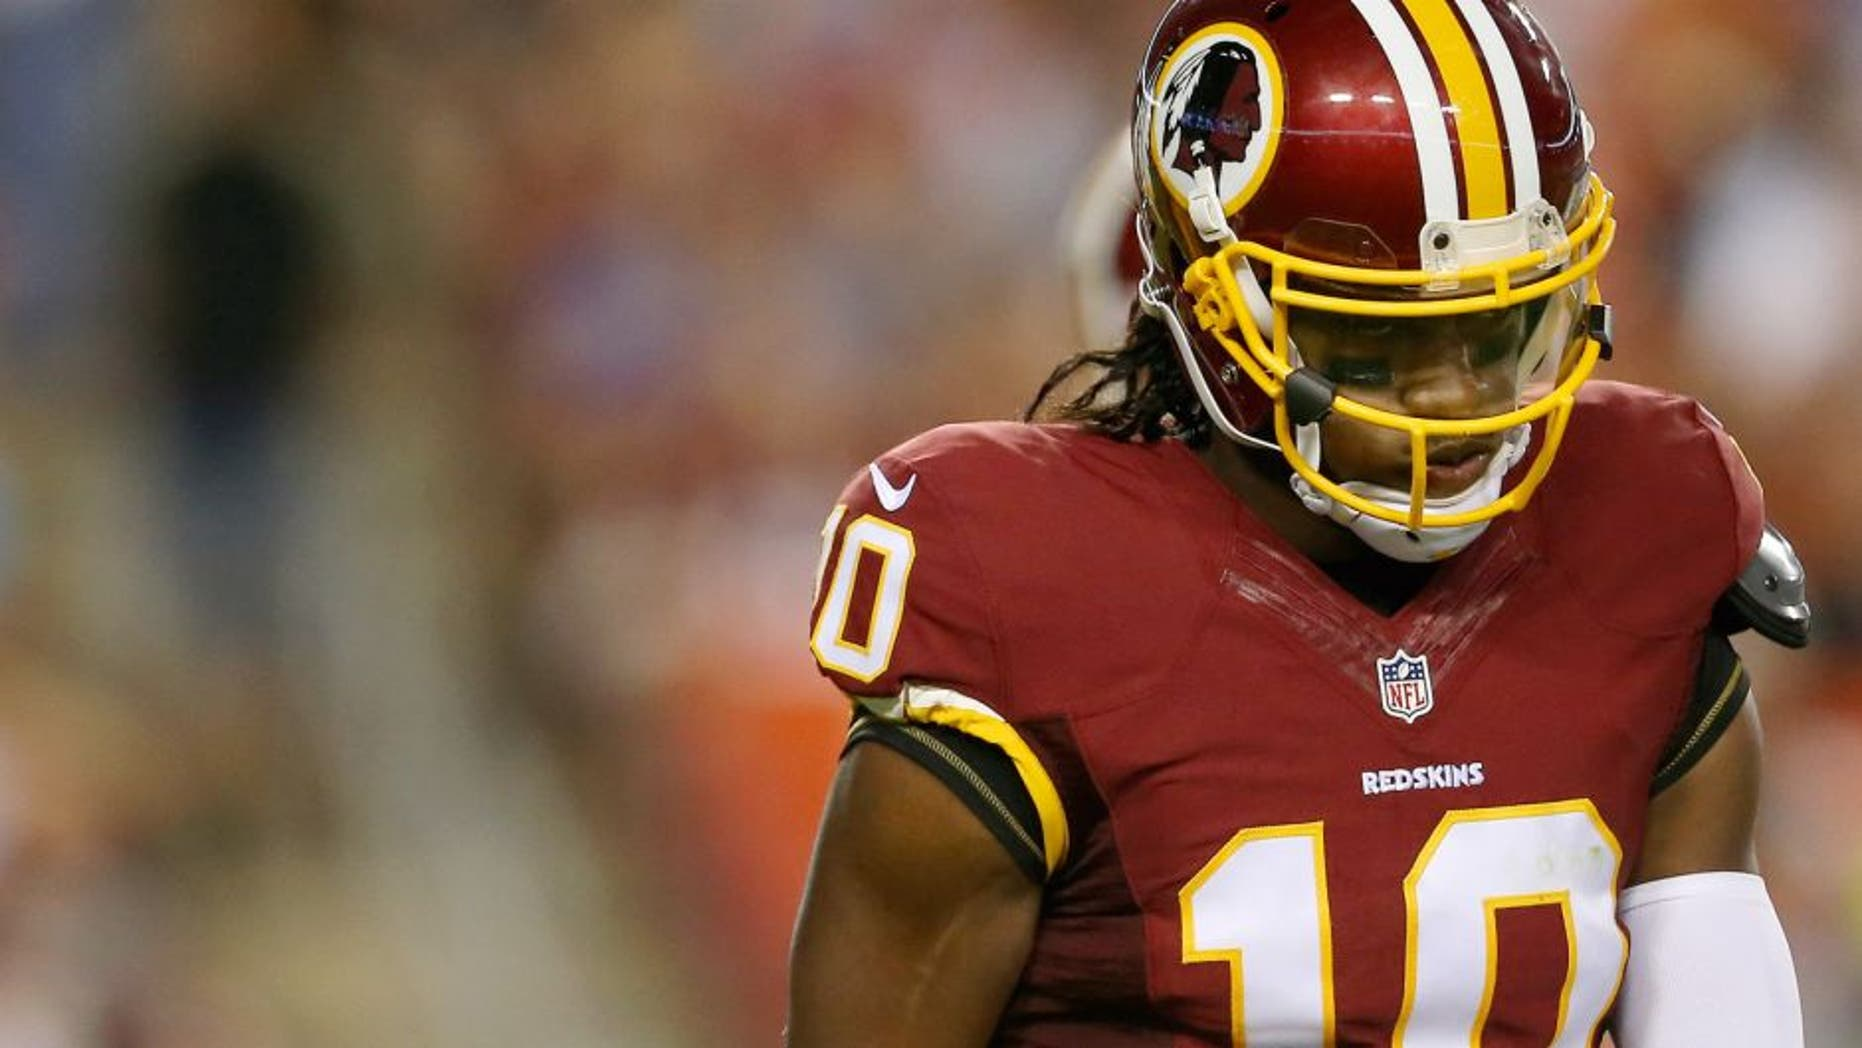 Quarterback Robert Griffin III #10 of the Washington Redskins walks off the field during a preseason game against the Detroit Lions at FedEx Field on August 20, 2015 in Landover, Maryland. (Photo by Matt Hazlett/Getty Images)